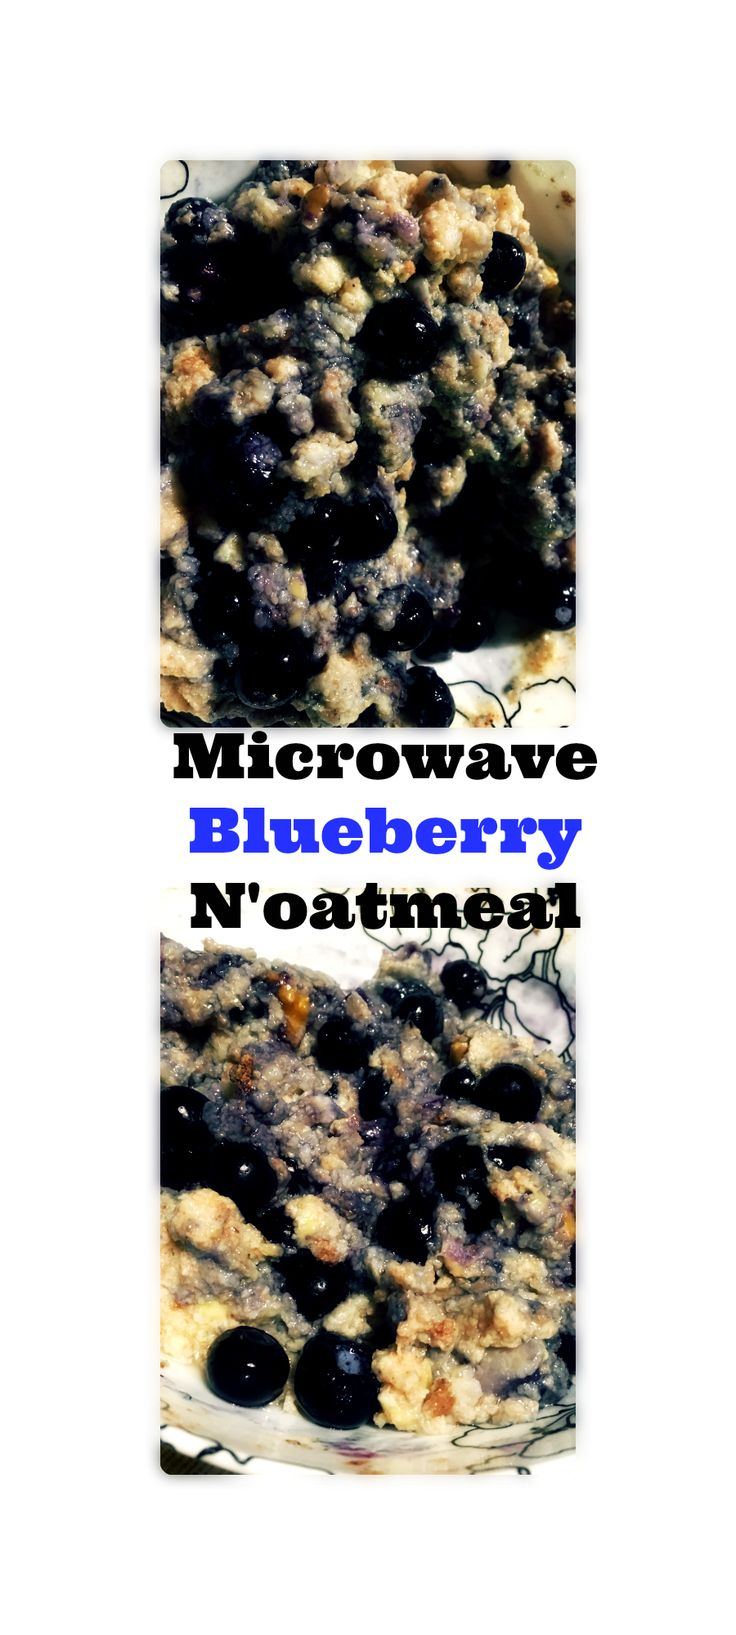 Microwave Blueberry N'oatmeal